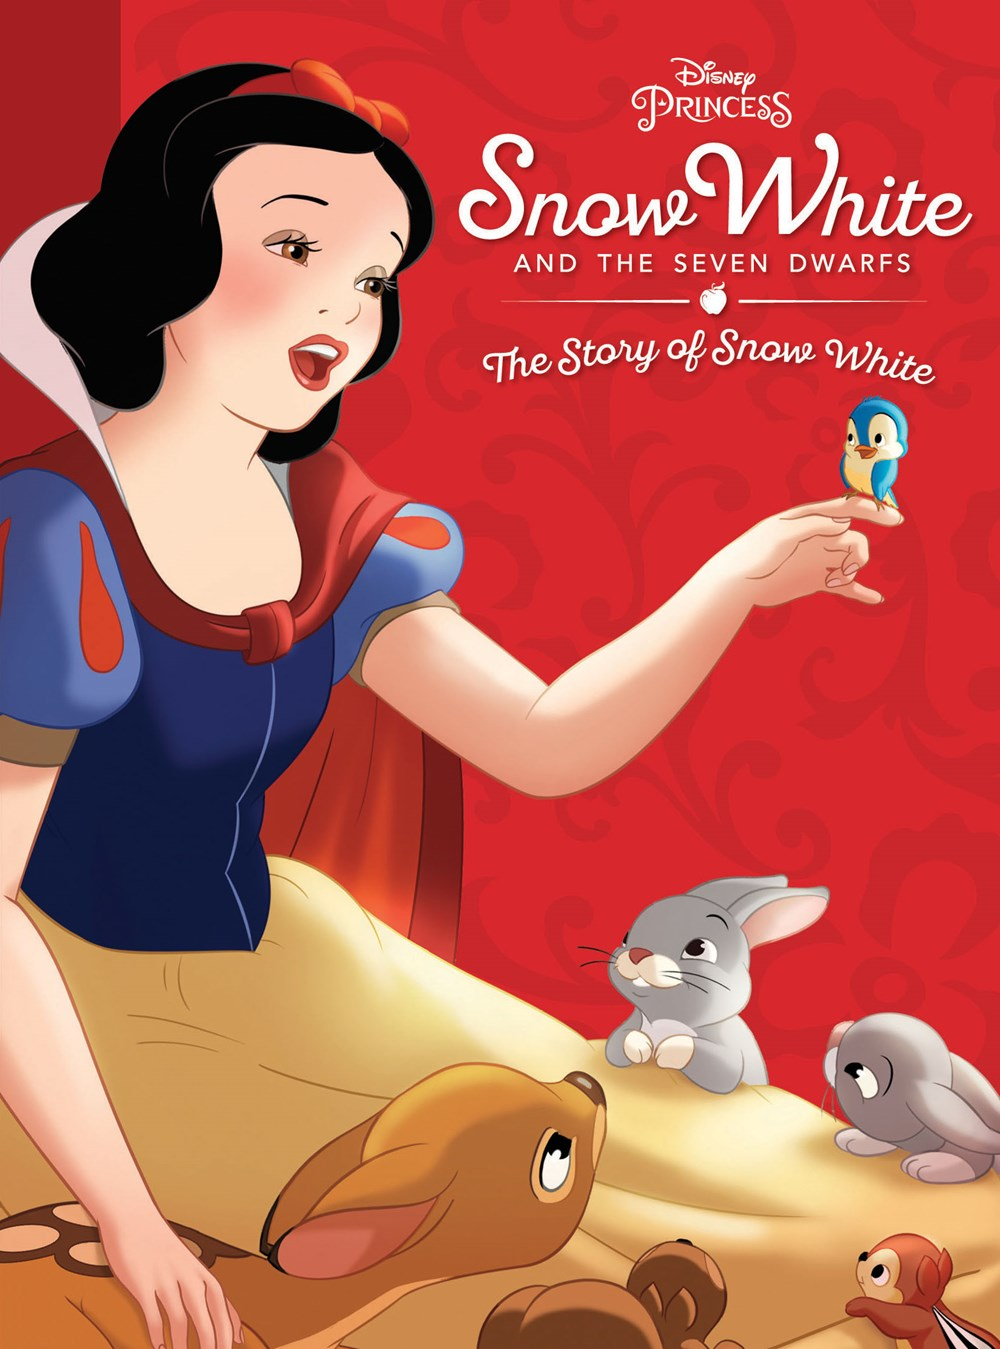 Snow White And The Seven Dwarfs: The Story Of Snow White